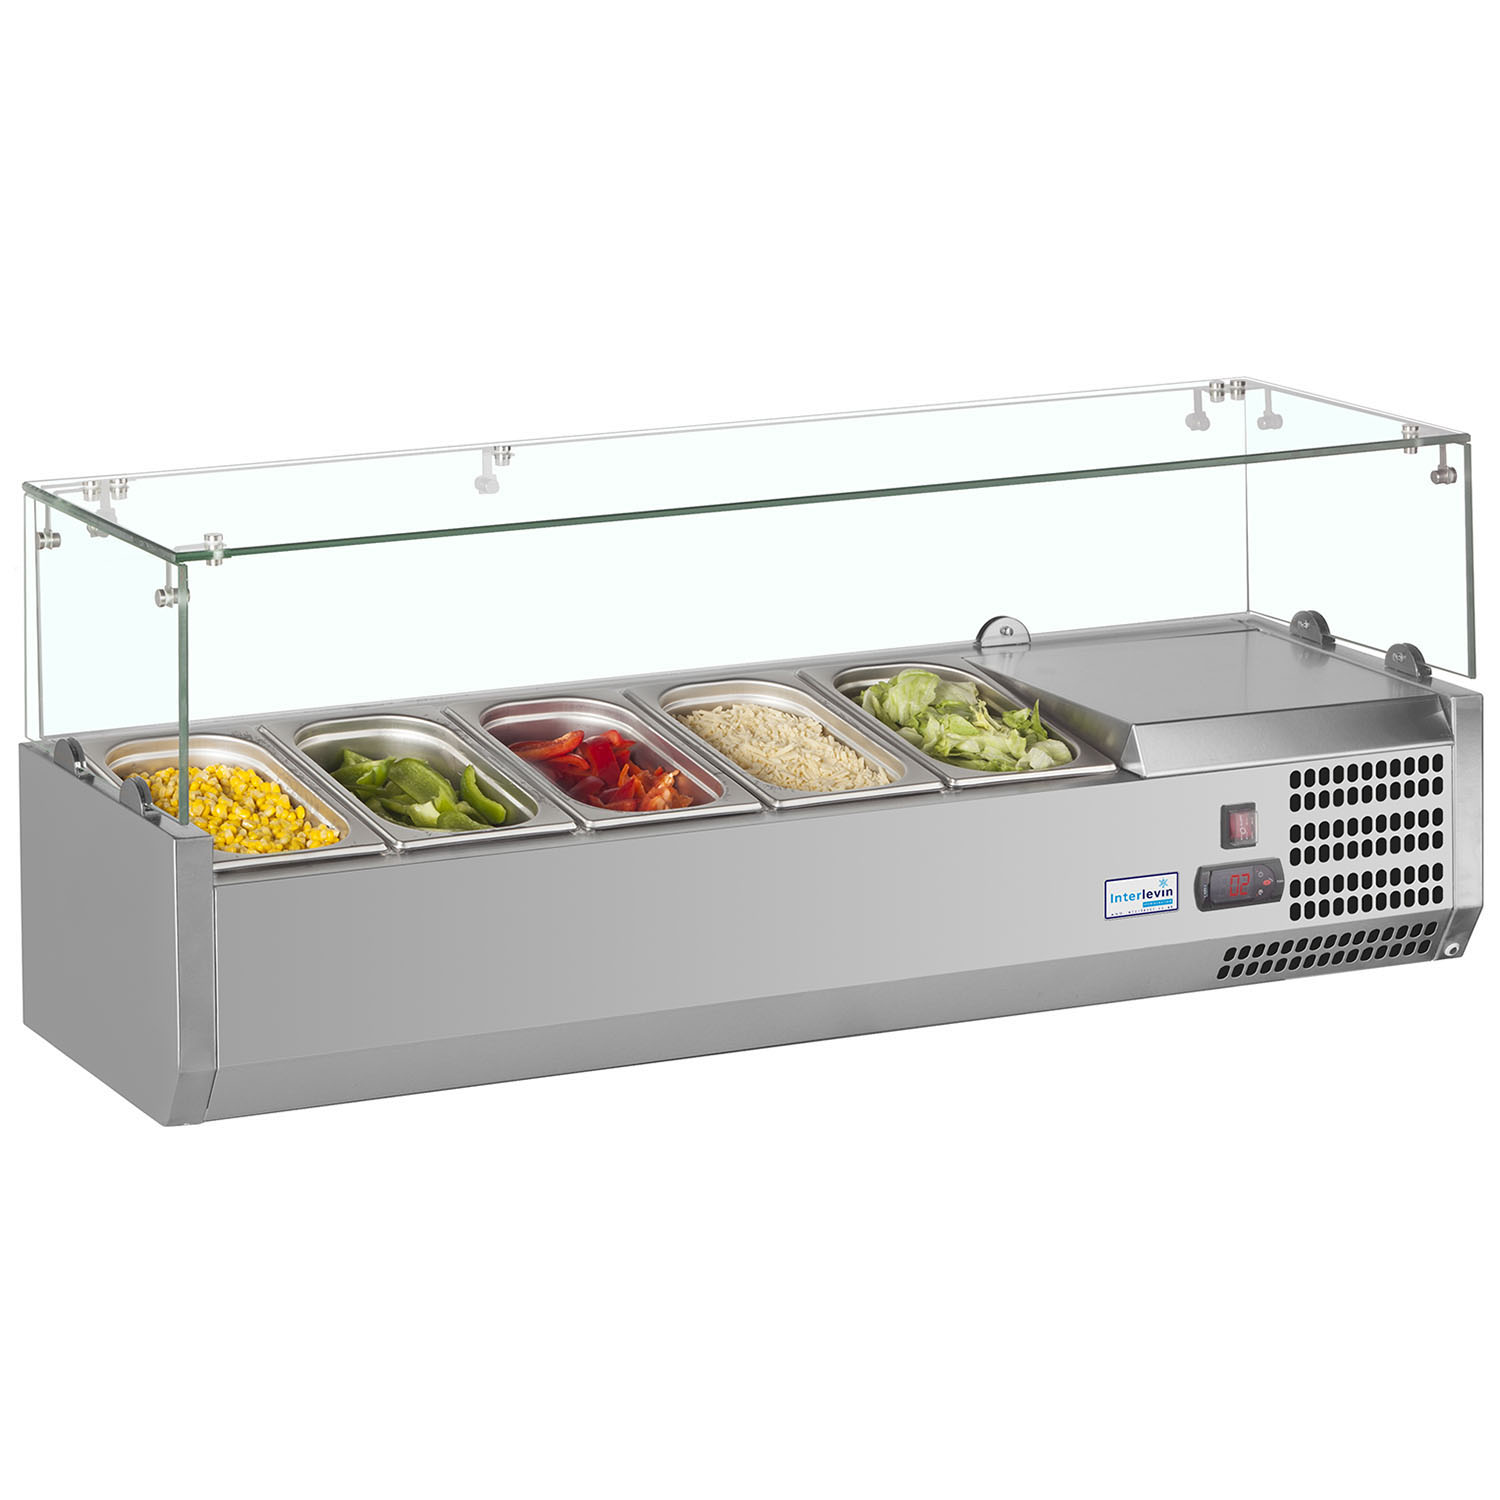 Interlevin VRX1200/330 SS Gastronorm Topping Shelf